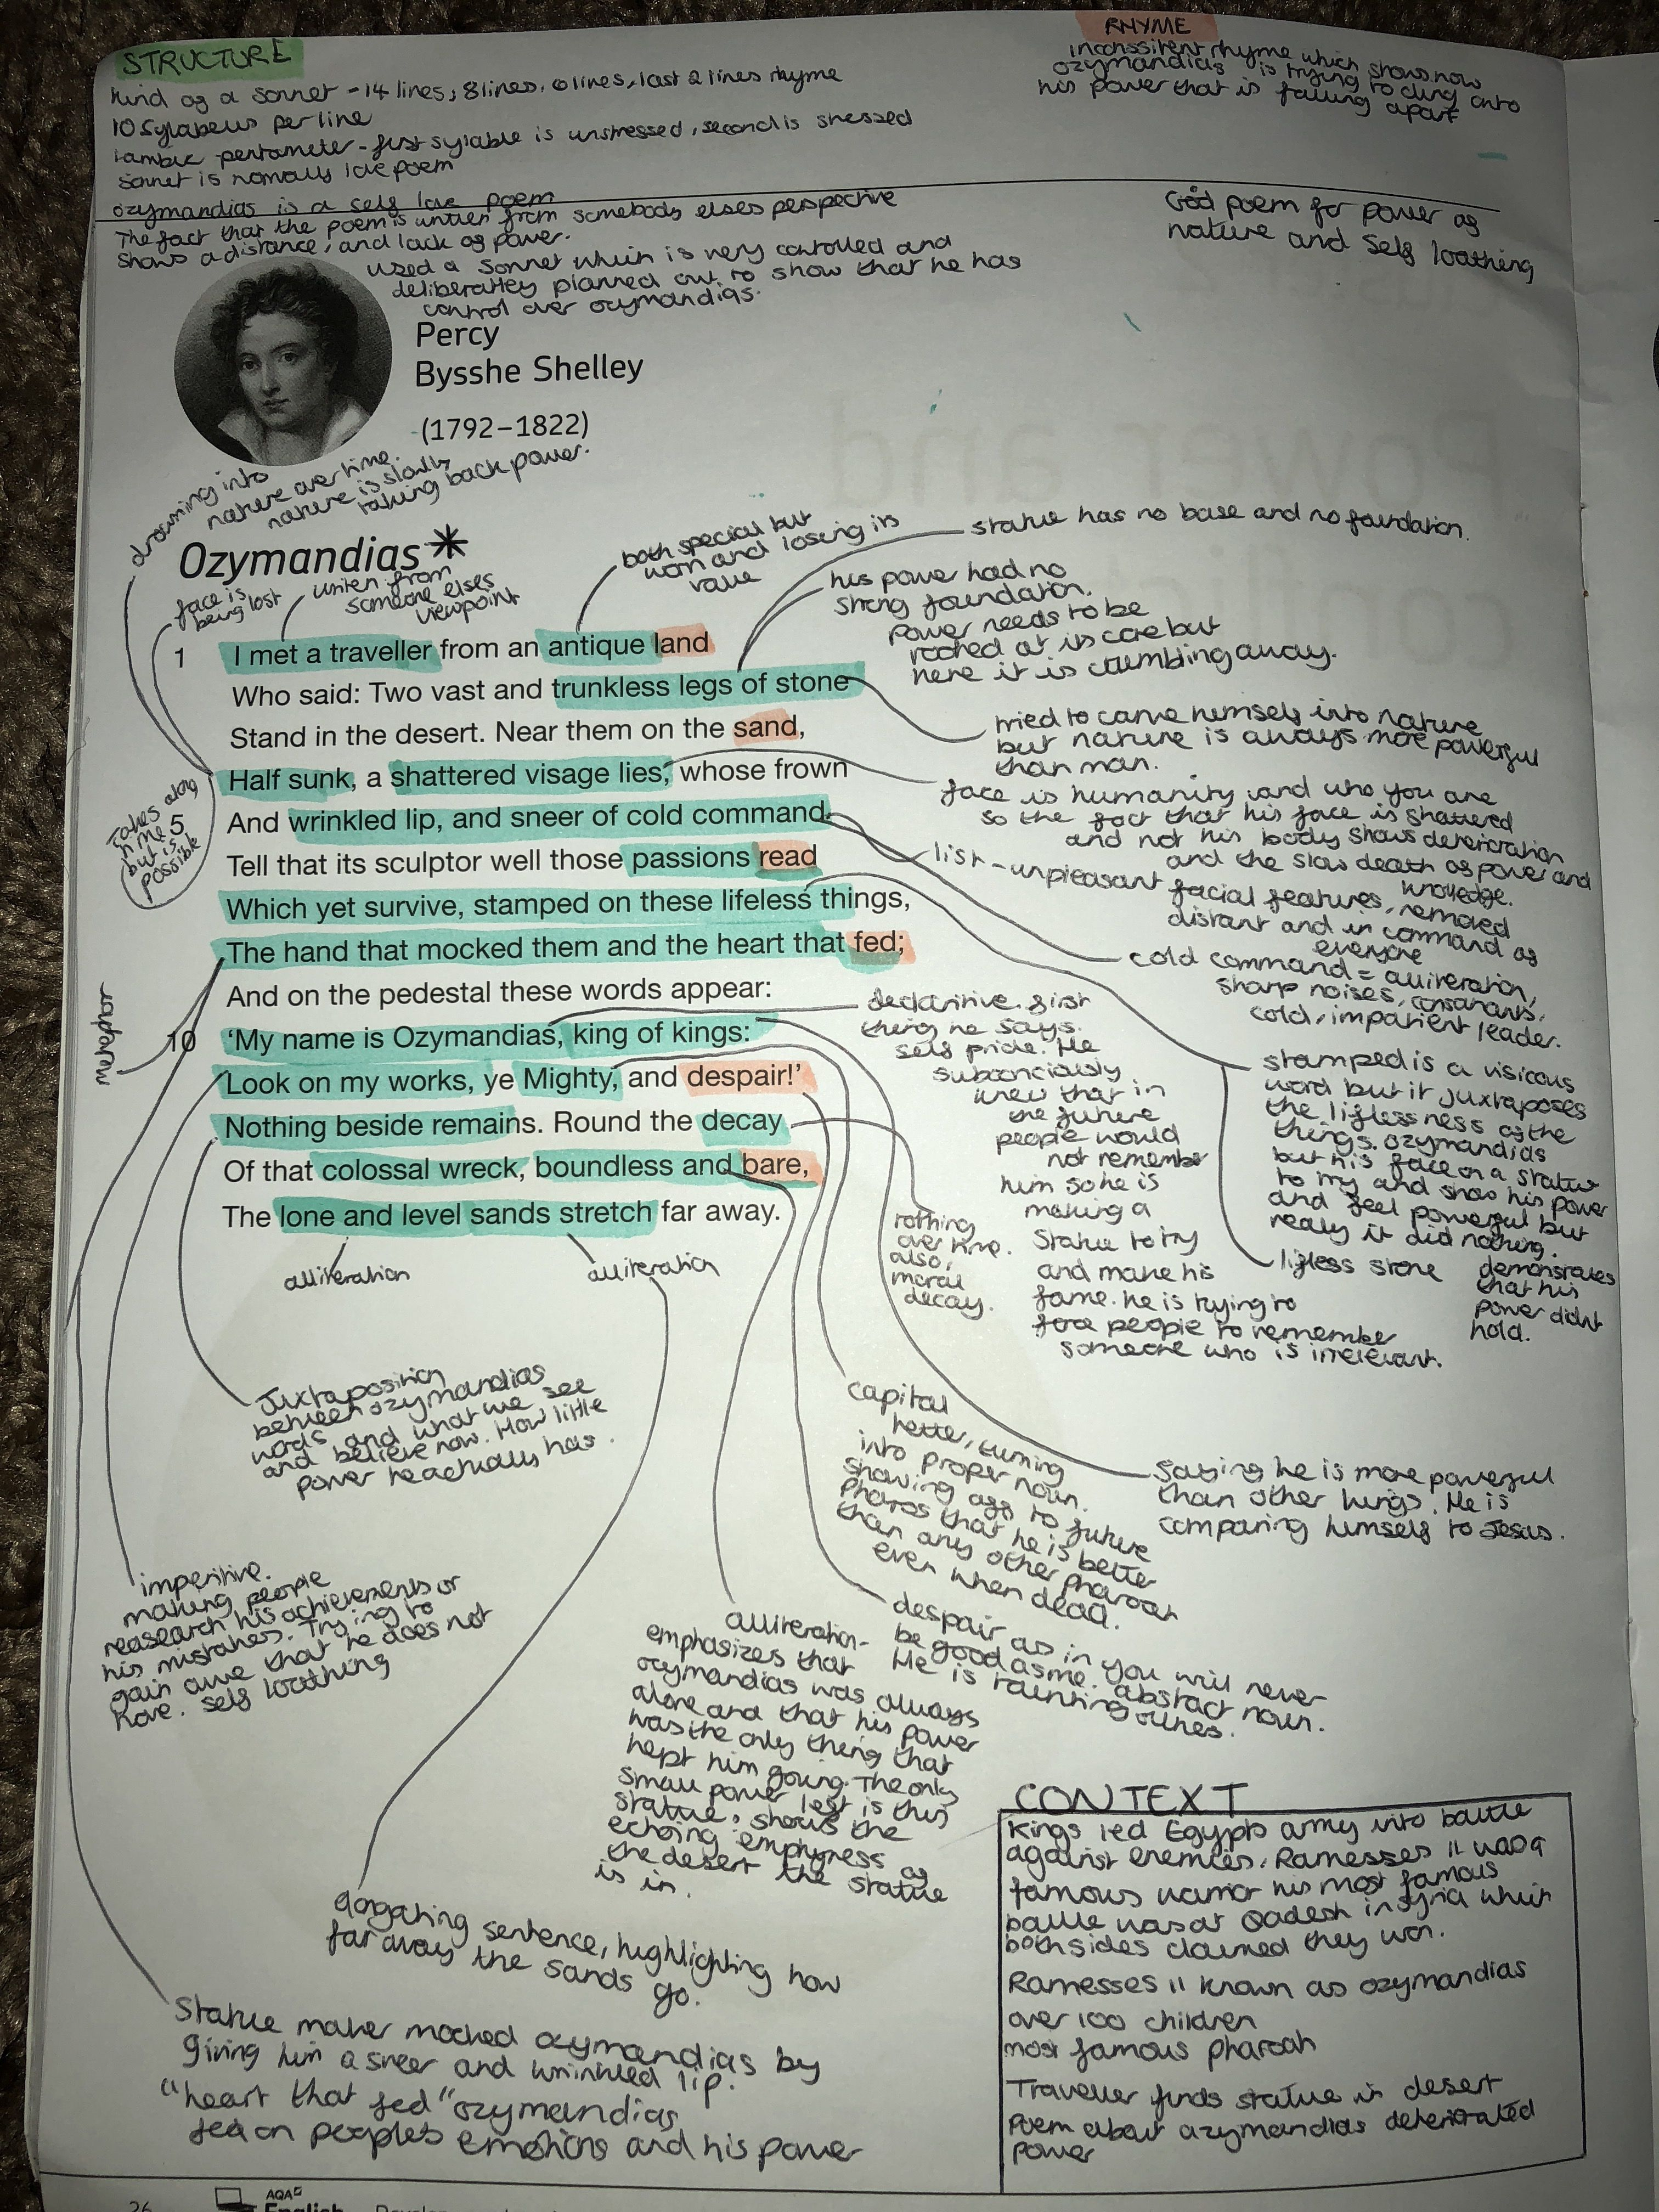 Gcse English Lit Power And Conflict Poem Ozymandia Revision Studyinspo Analysi Language Poems Theme Of The By Pb Shelley